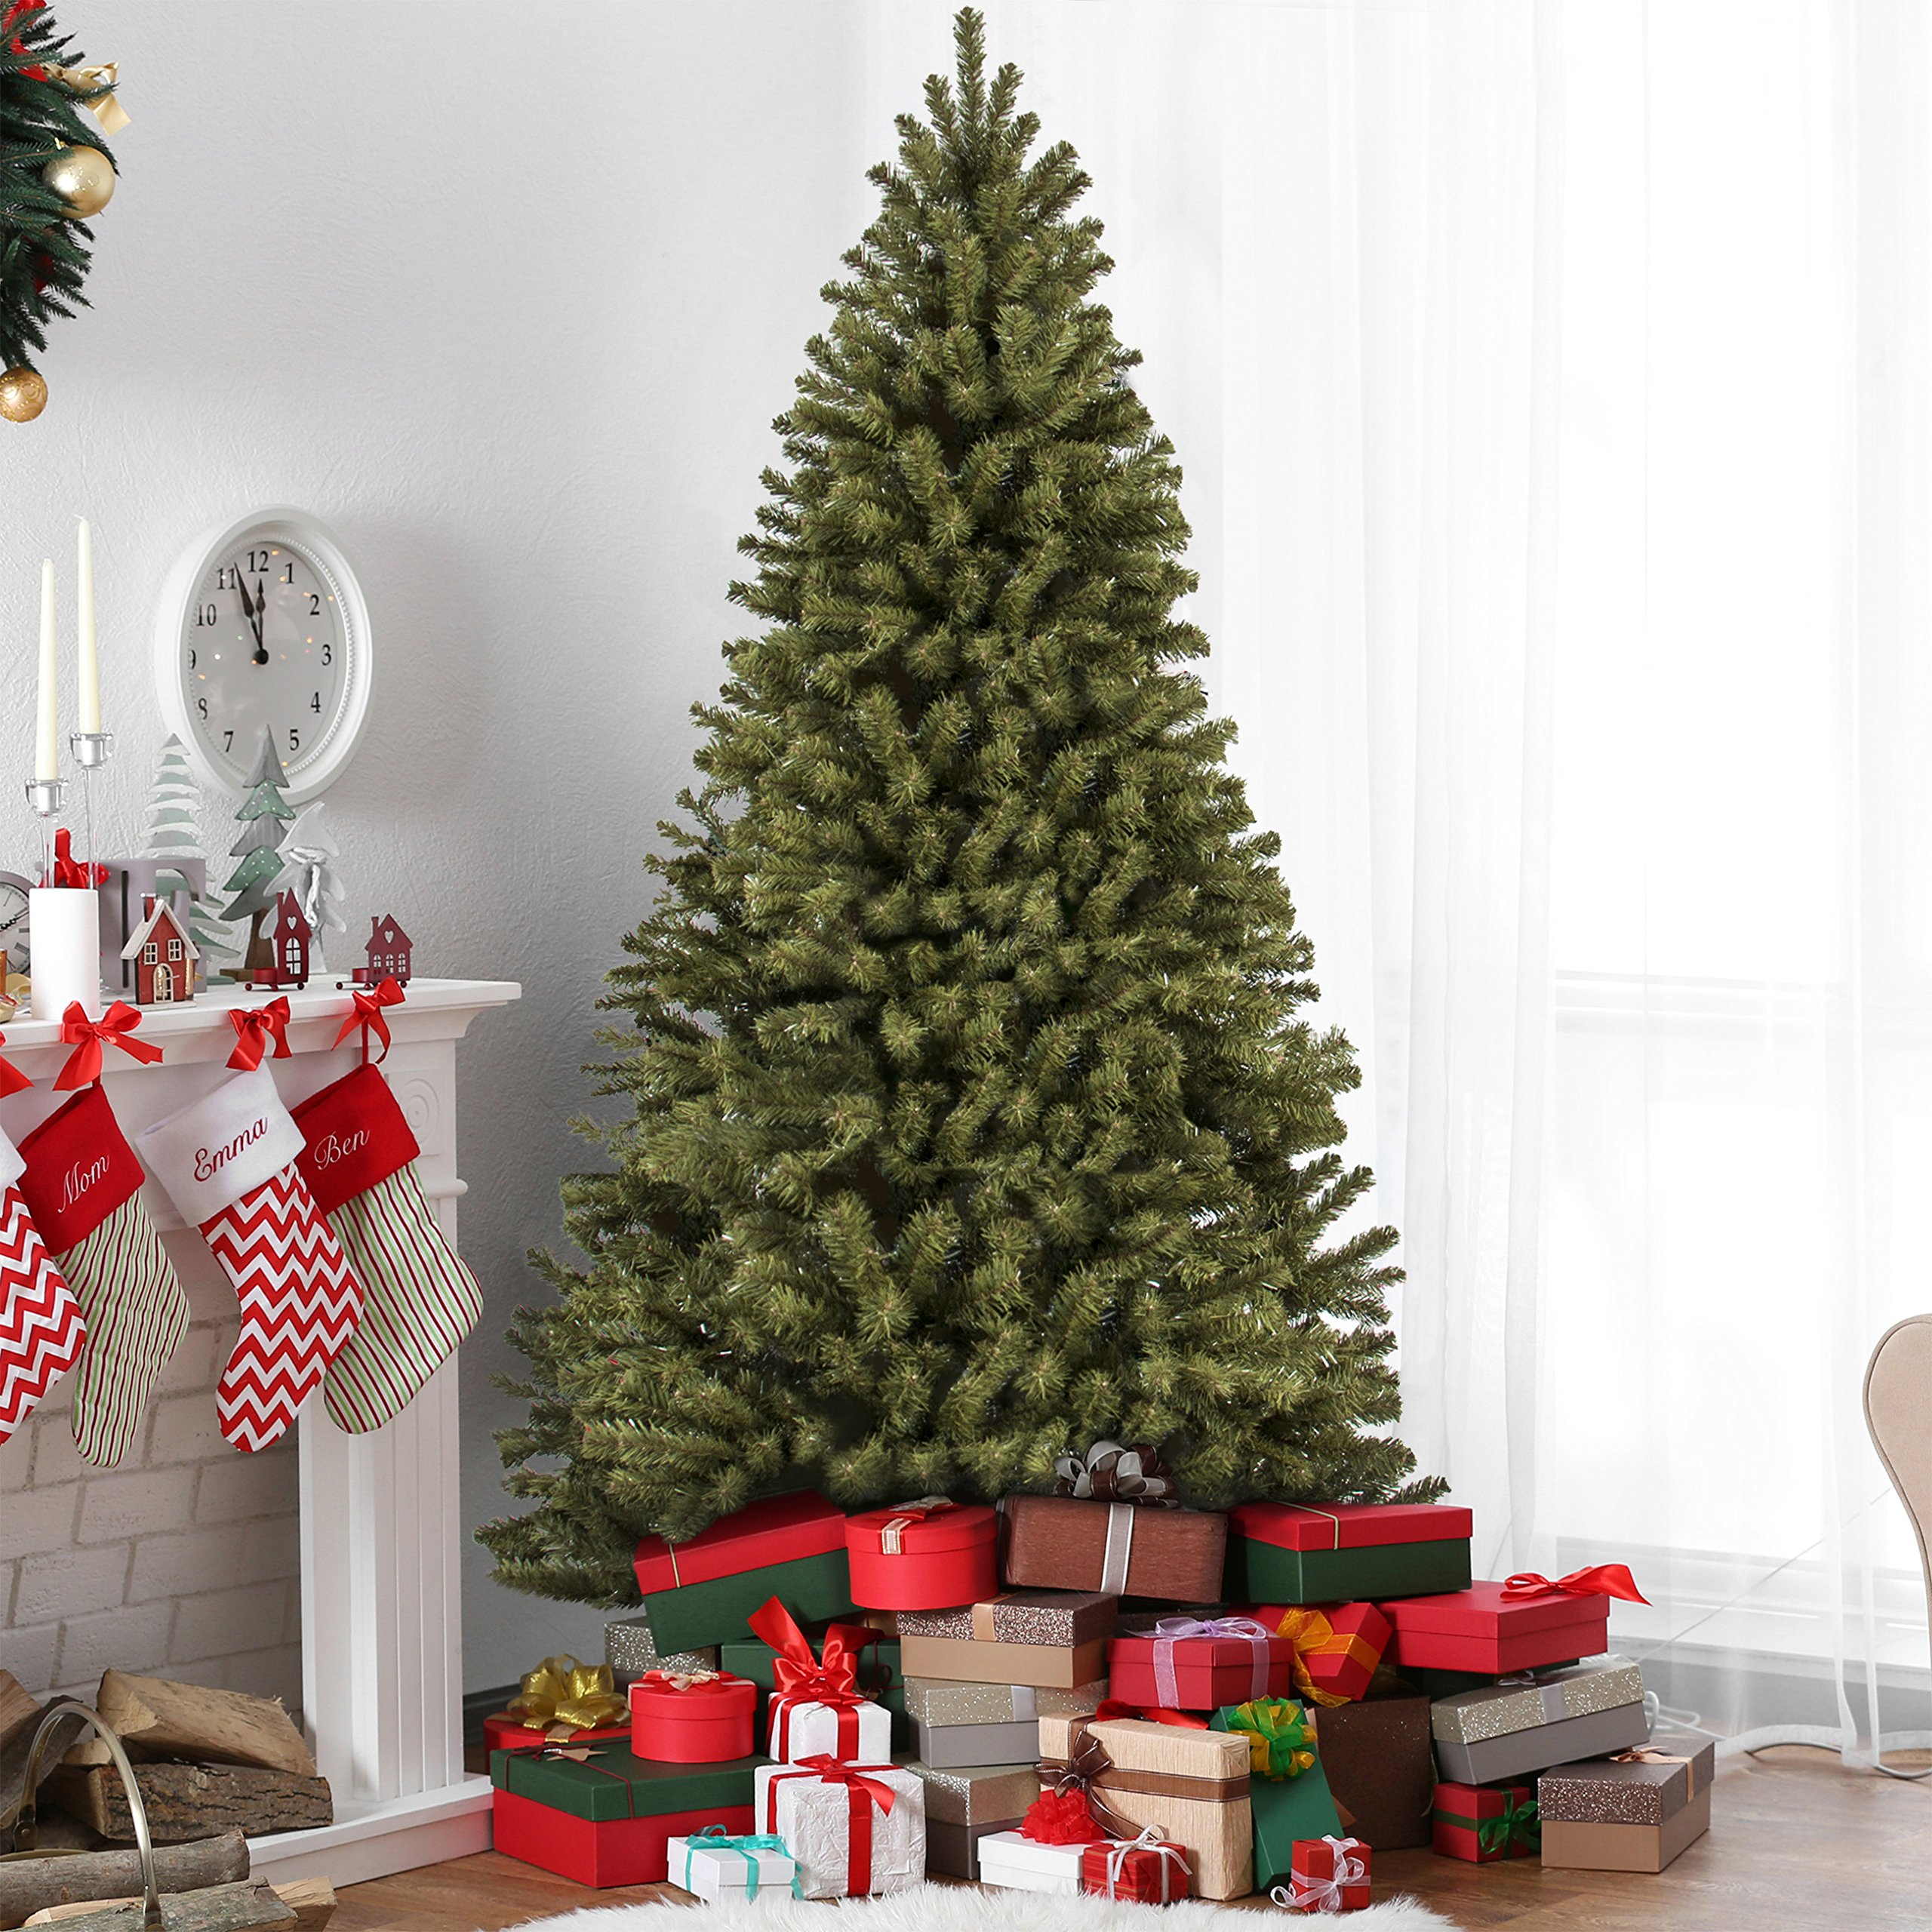 Best Deal On Artificial Christmas Trees: Deal Best Choice Products 9ft Spruce Hinged Artificial